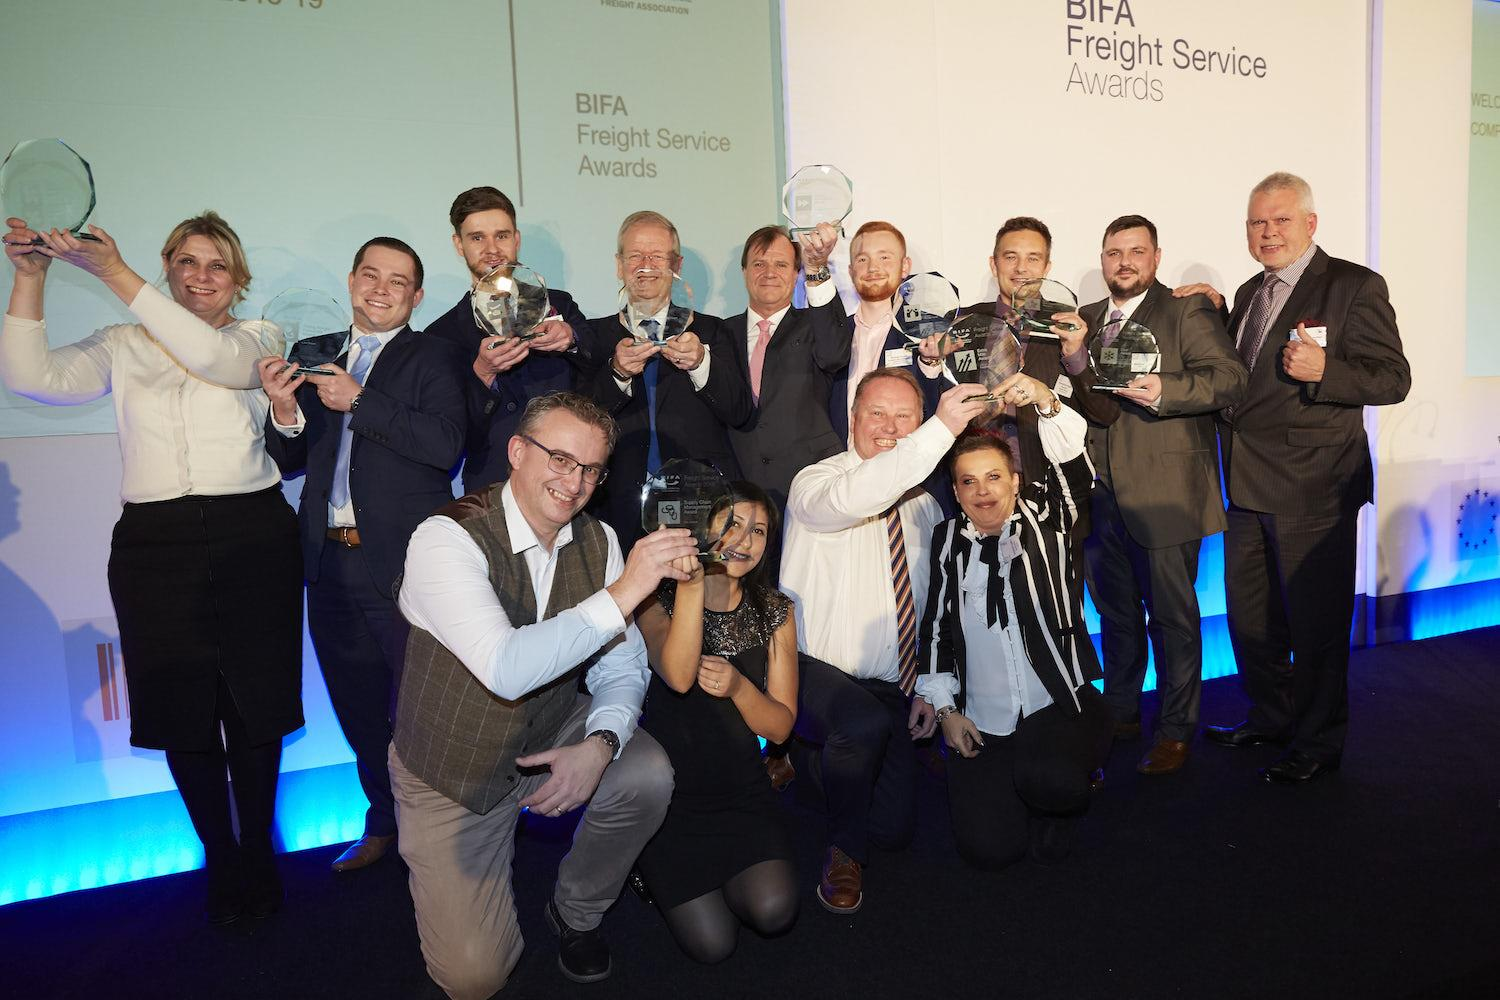 The winners of last year's BIFA Freight Service Awards.